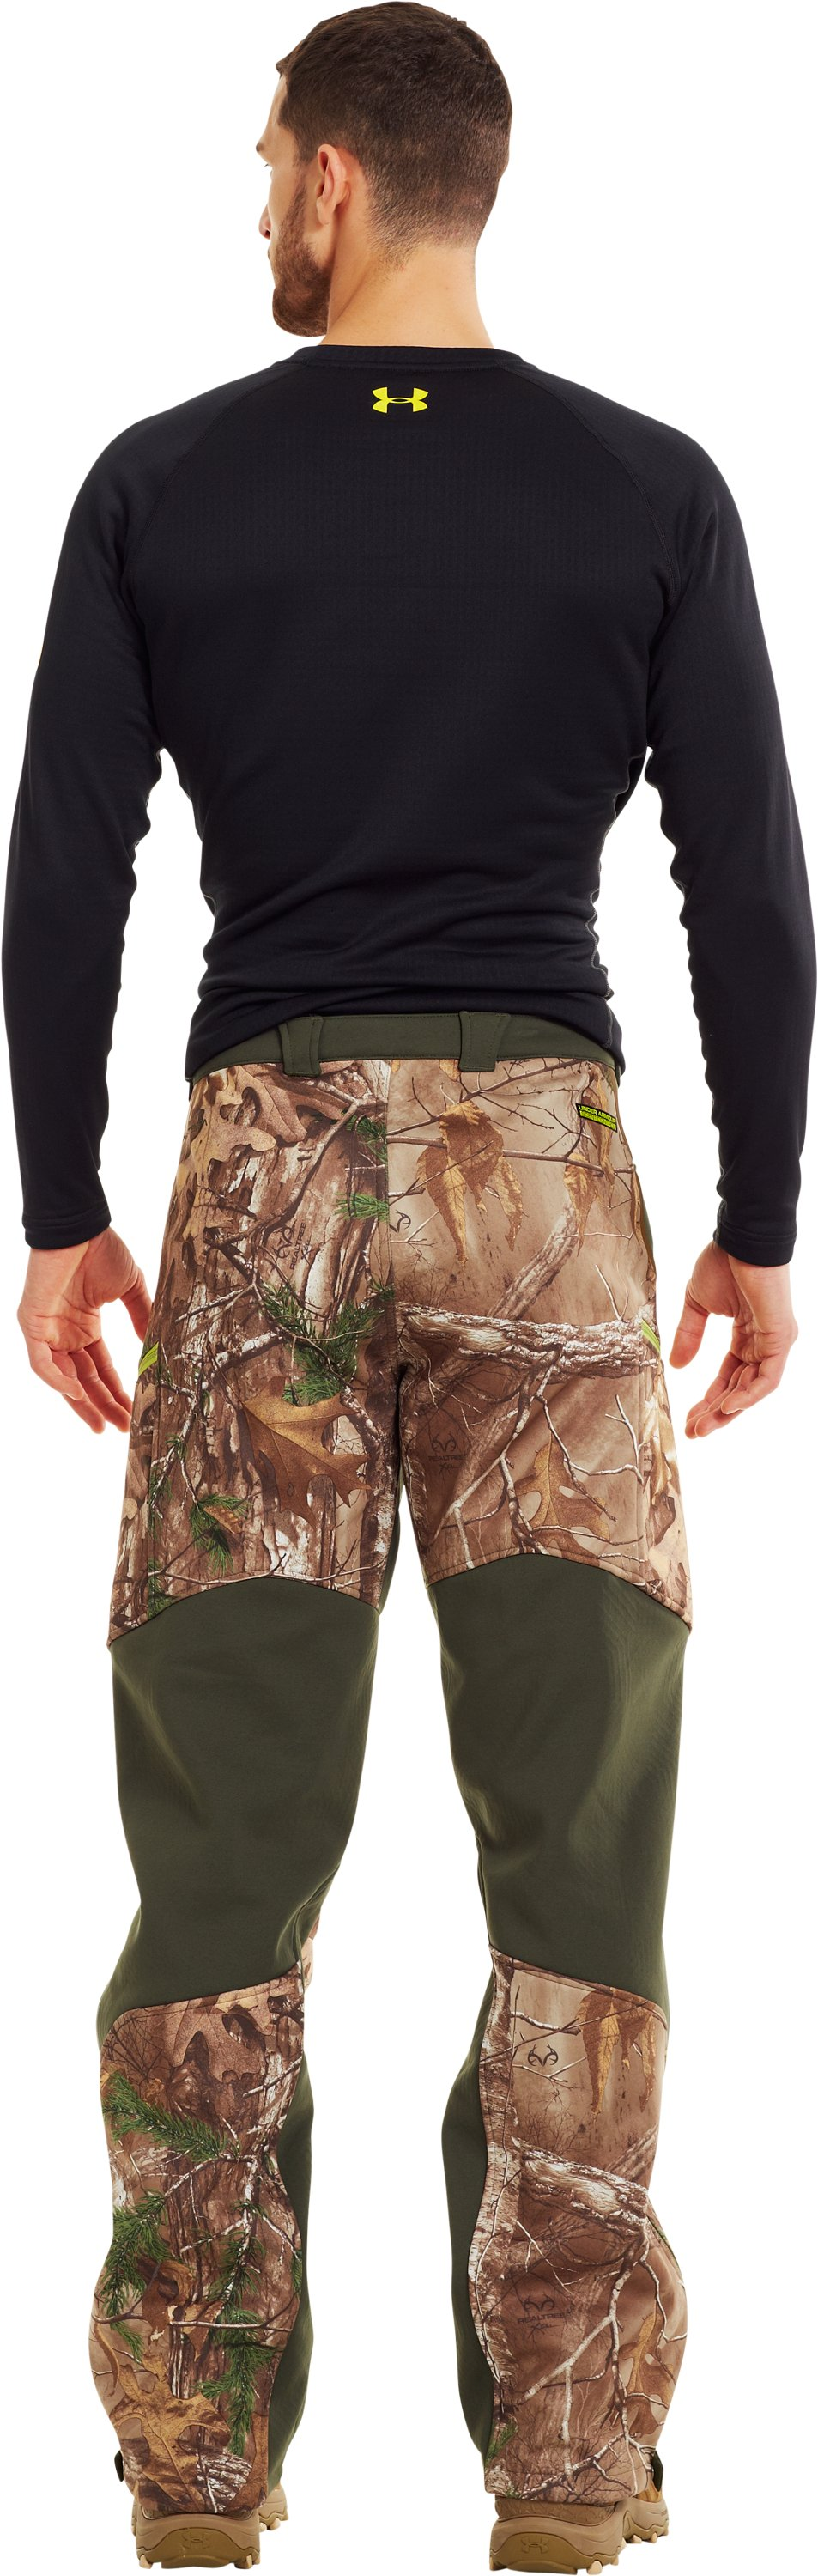 Men's ColdGear® Infrared Ridge Reaper® Softshell Pants, Mossy Oak Break-Up Infinity, Back